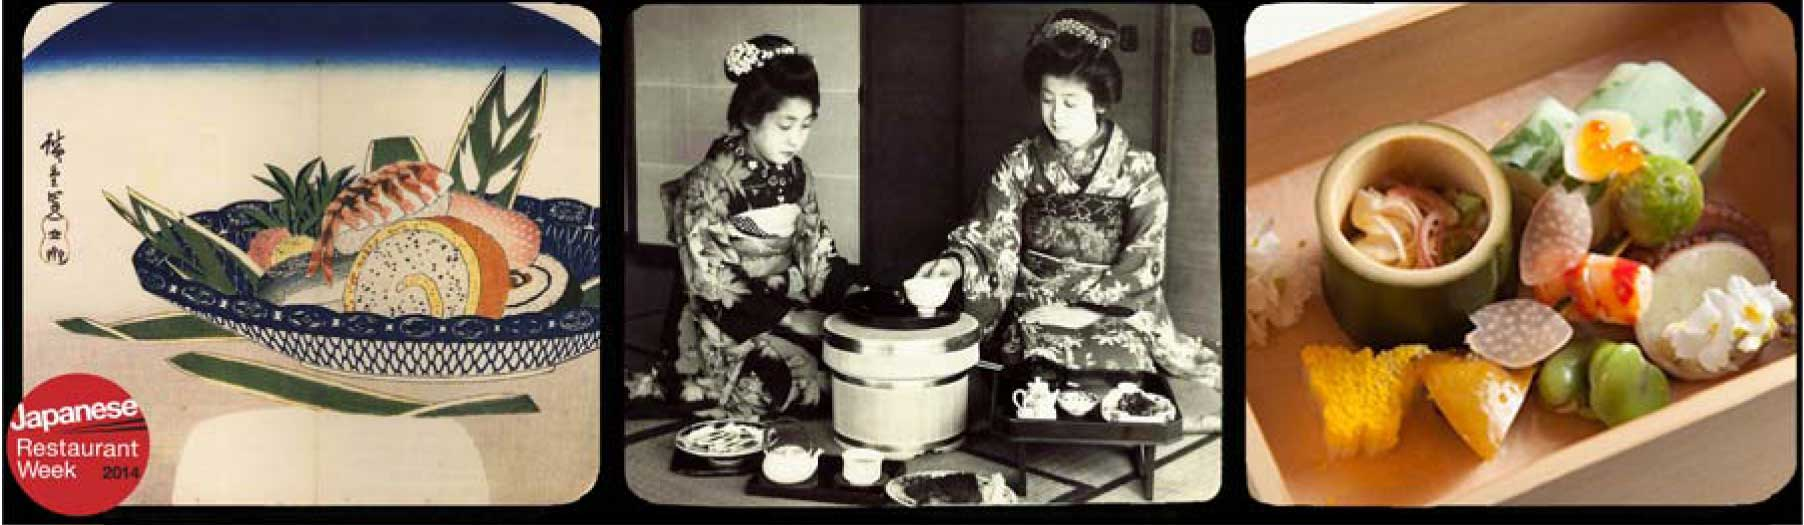 Thirty participating Japanese restaurants will transport diners 100 years back with special traditional dishes during Japan Restaurant Week in New York City, Feb 17-March 16.